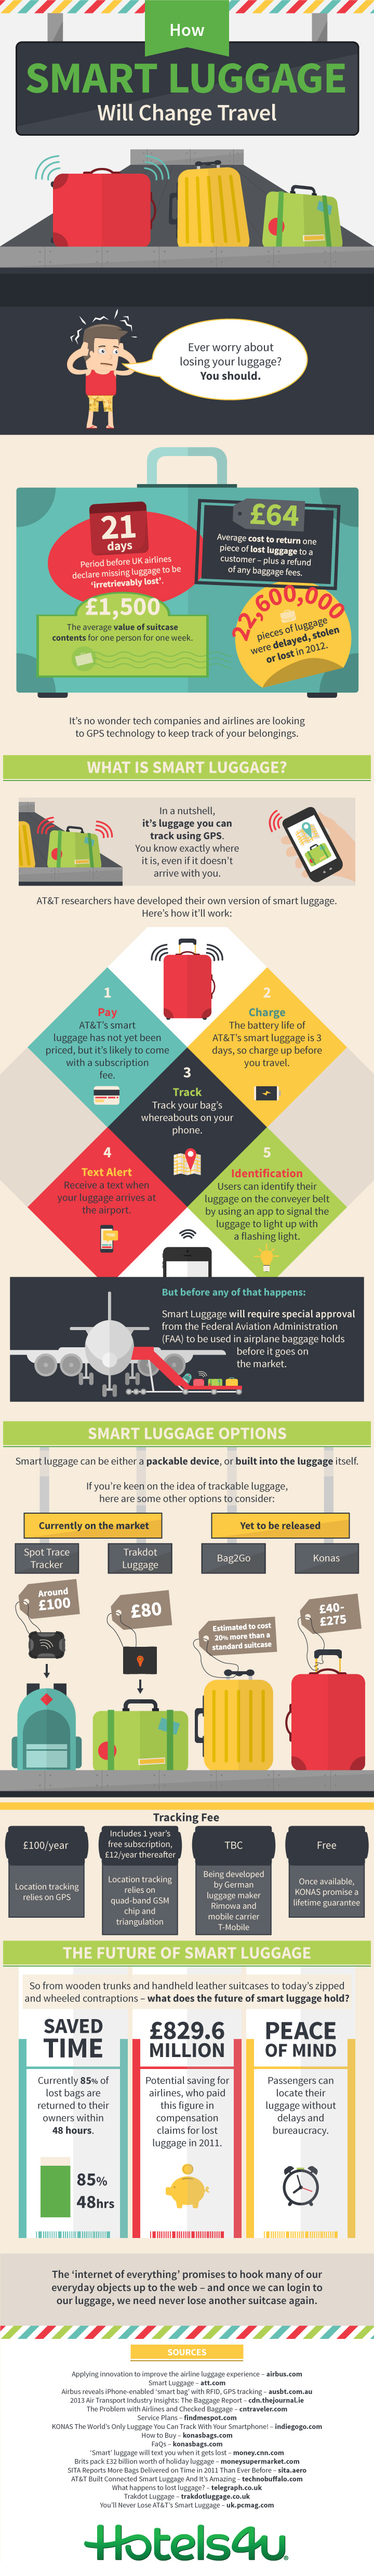 How Smart Luggage Will Change Travel